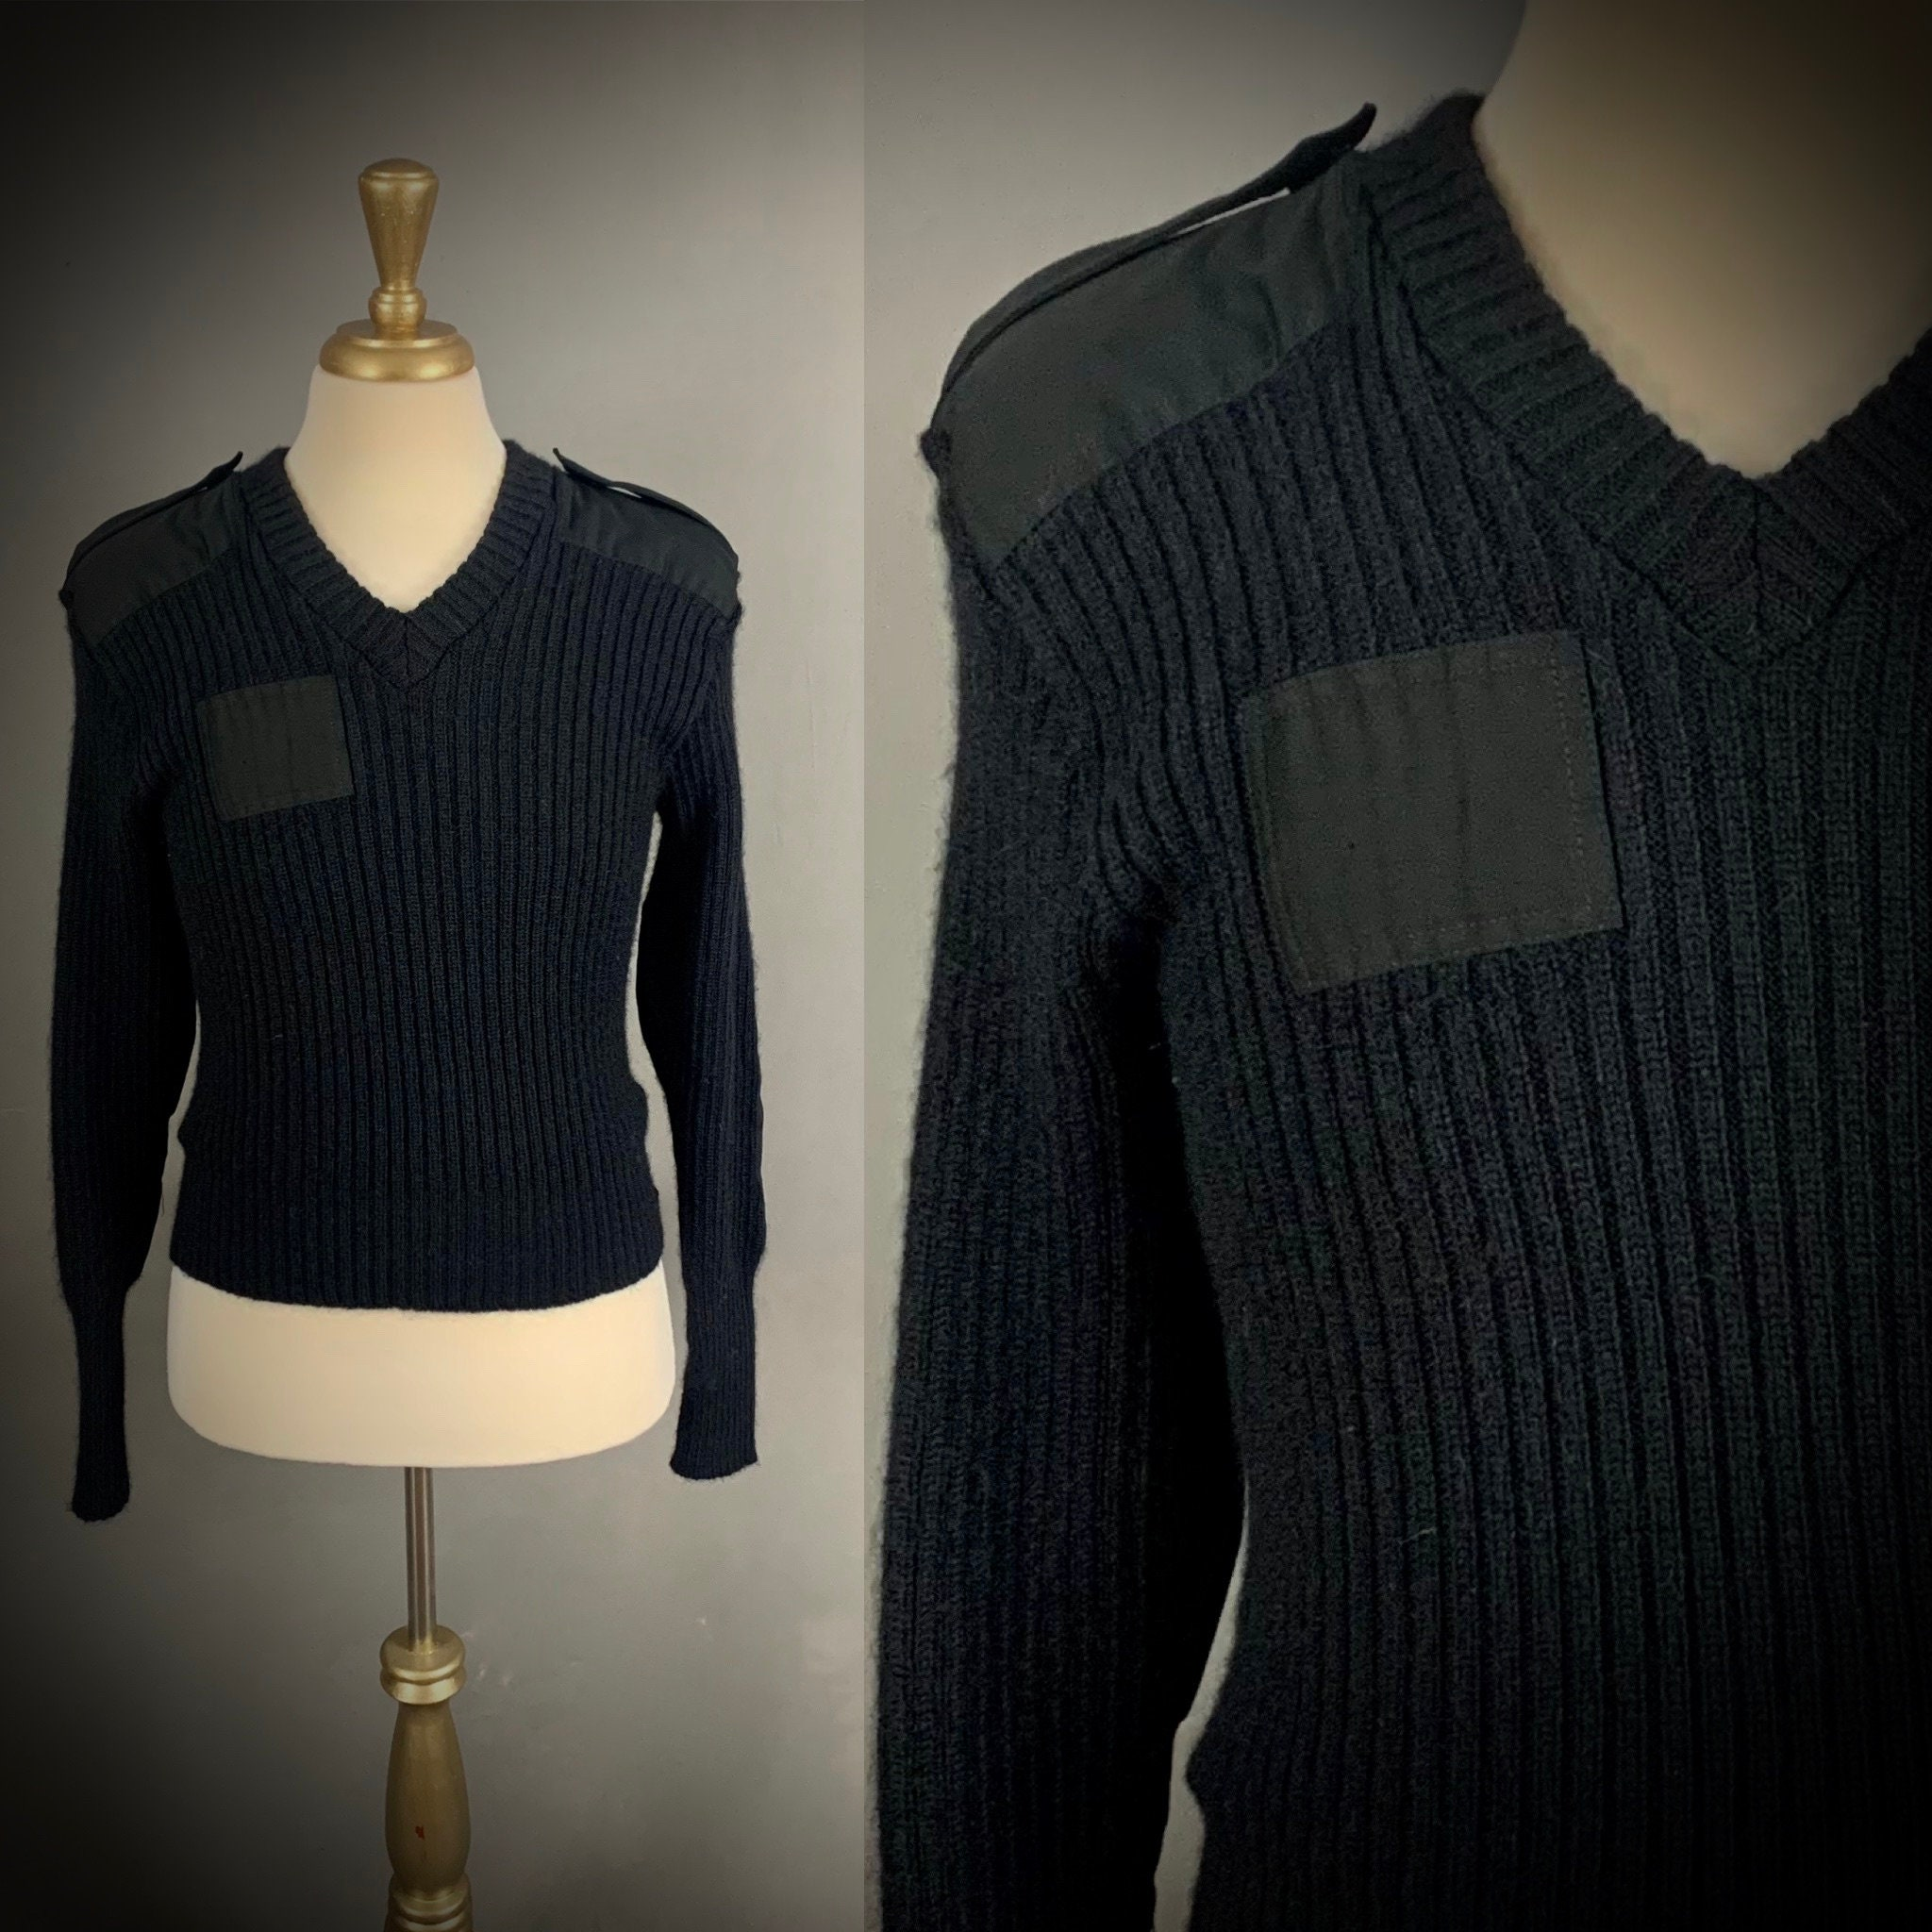 80s Sweatshirts, Sweaters, Vests | Women Citadel Military Army Wool Sweater Size 40 Made in England $68.00 AT vintagedancer.com